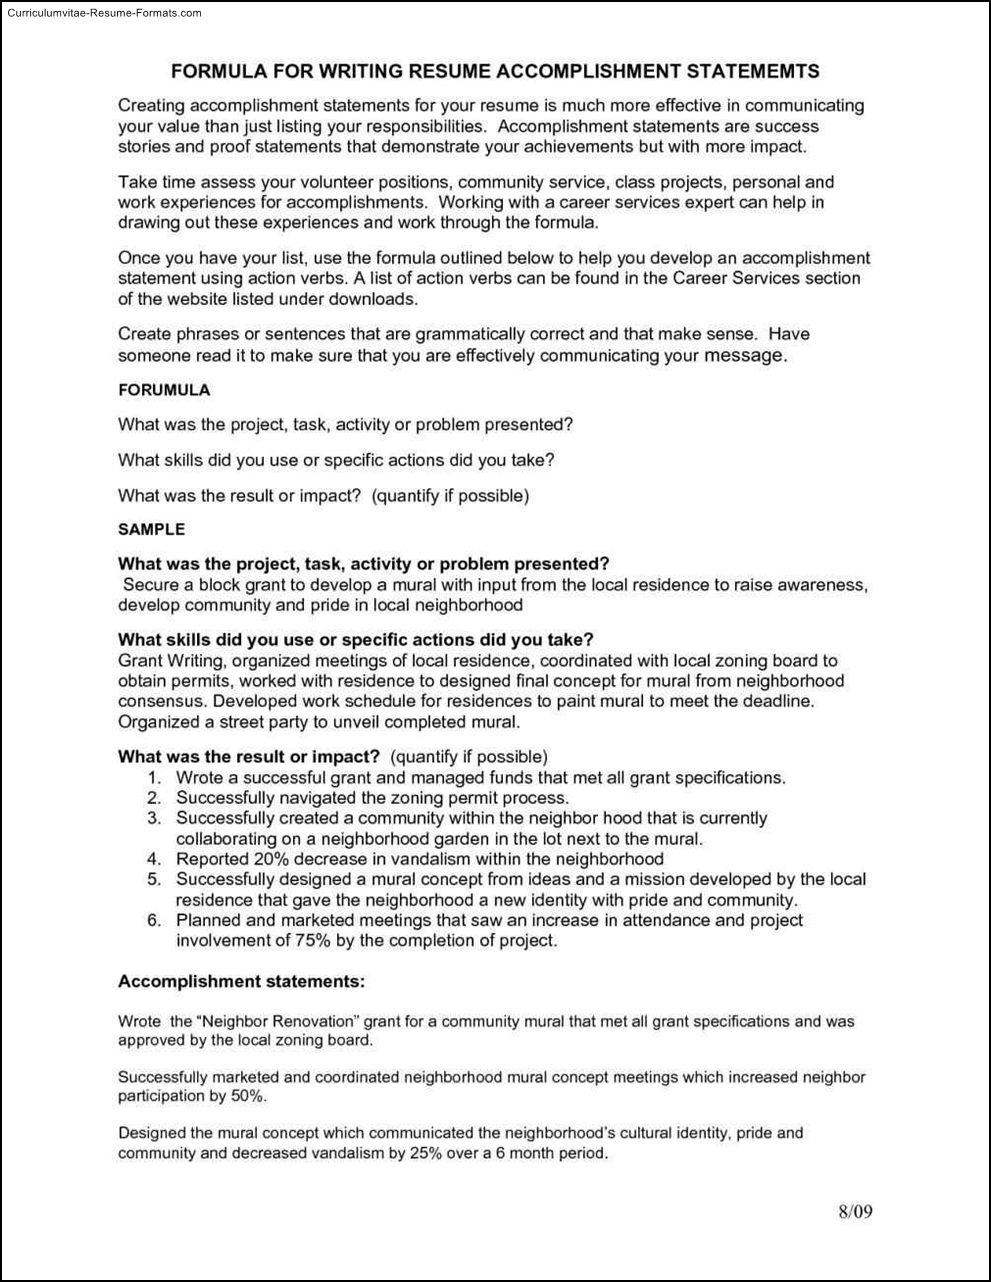 Achievement examples for resume